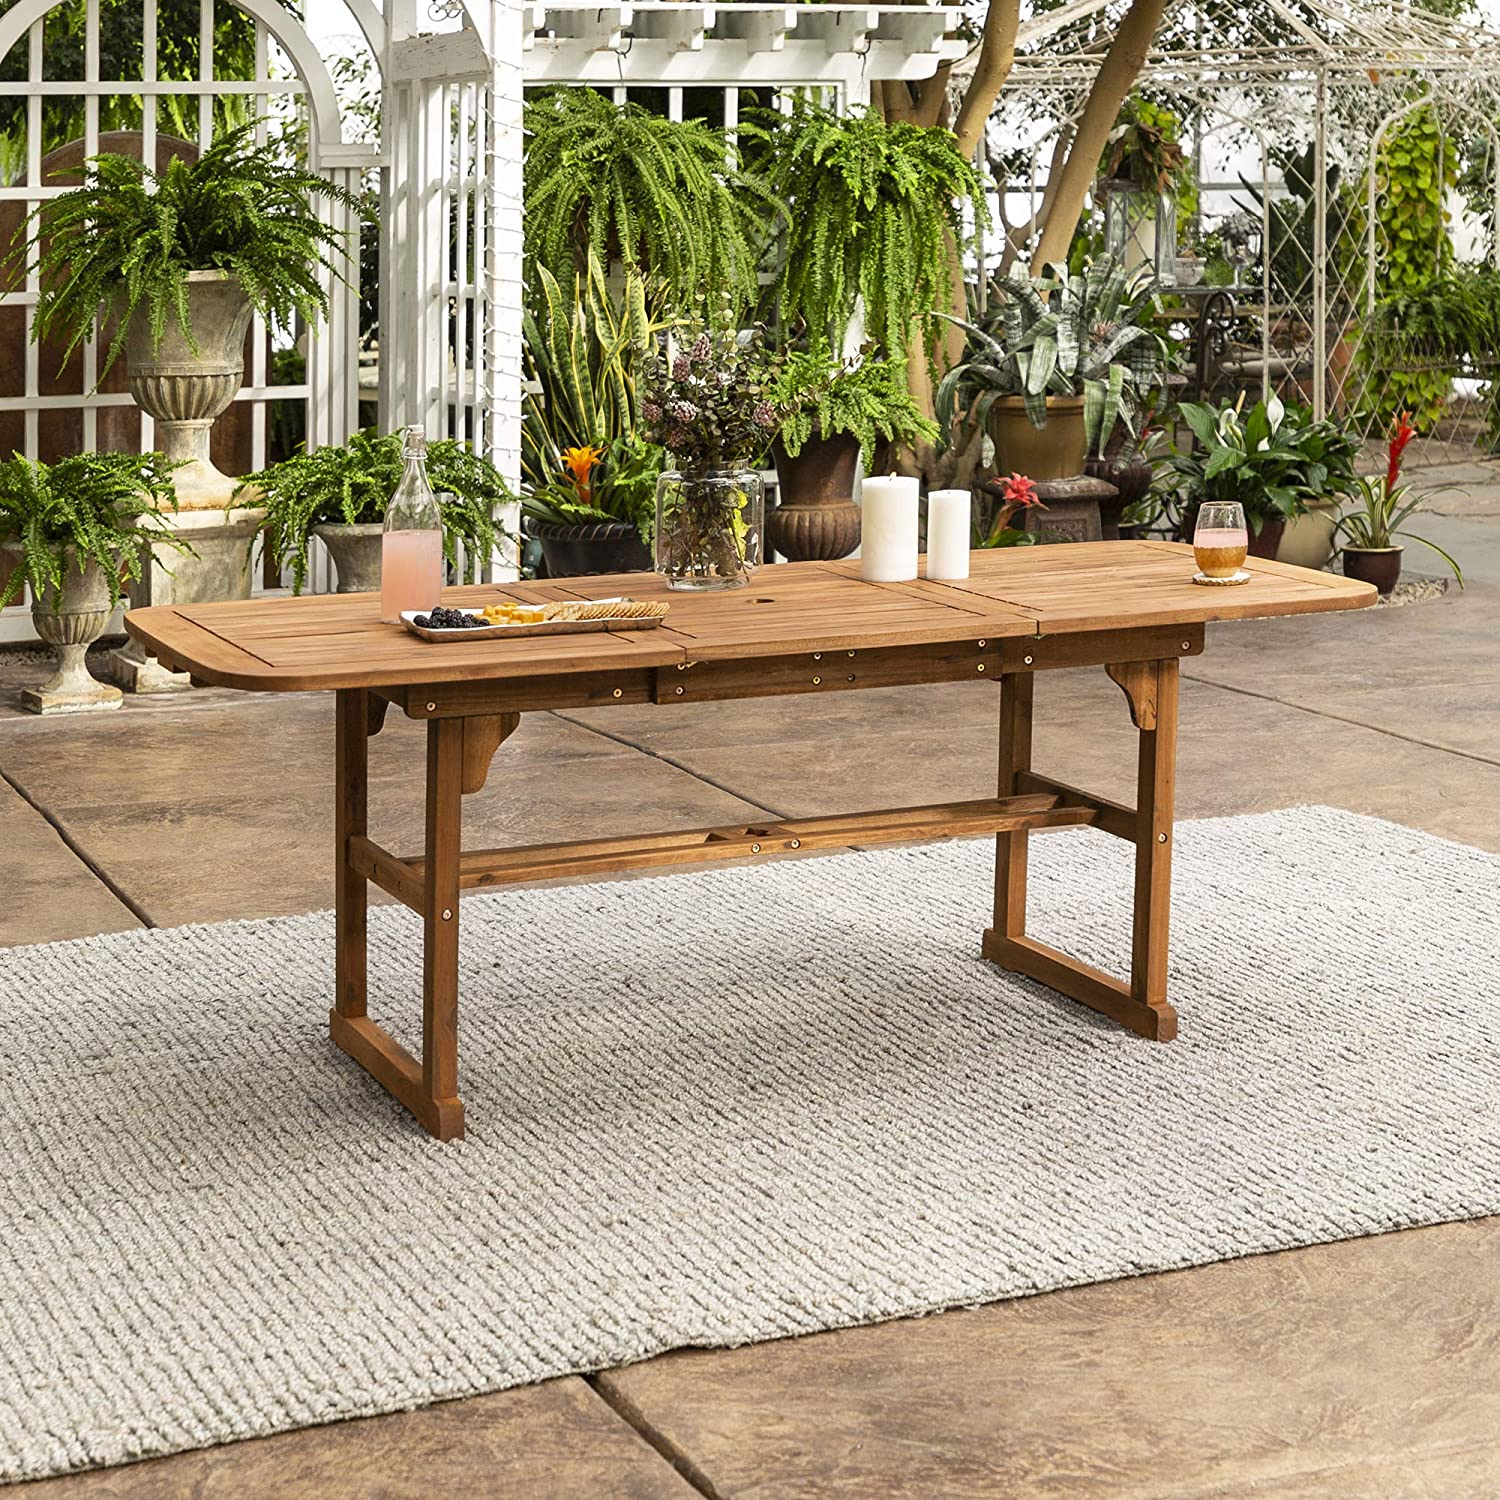 Walker Edison Furniture Company Solid Acacia Wood Patio Extendable Dining Table – Brown